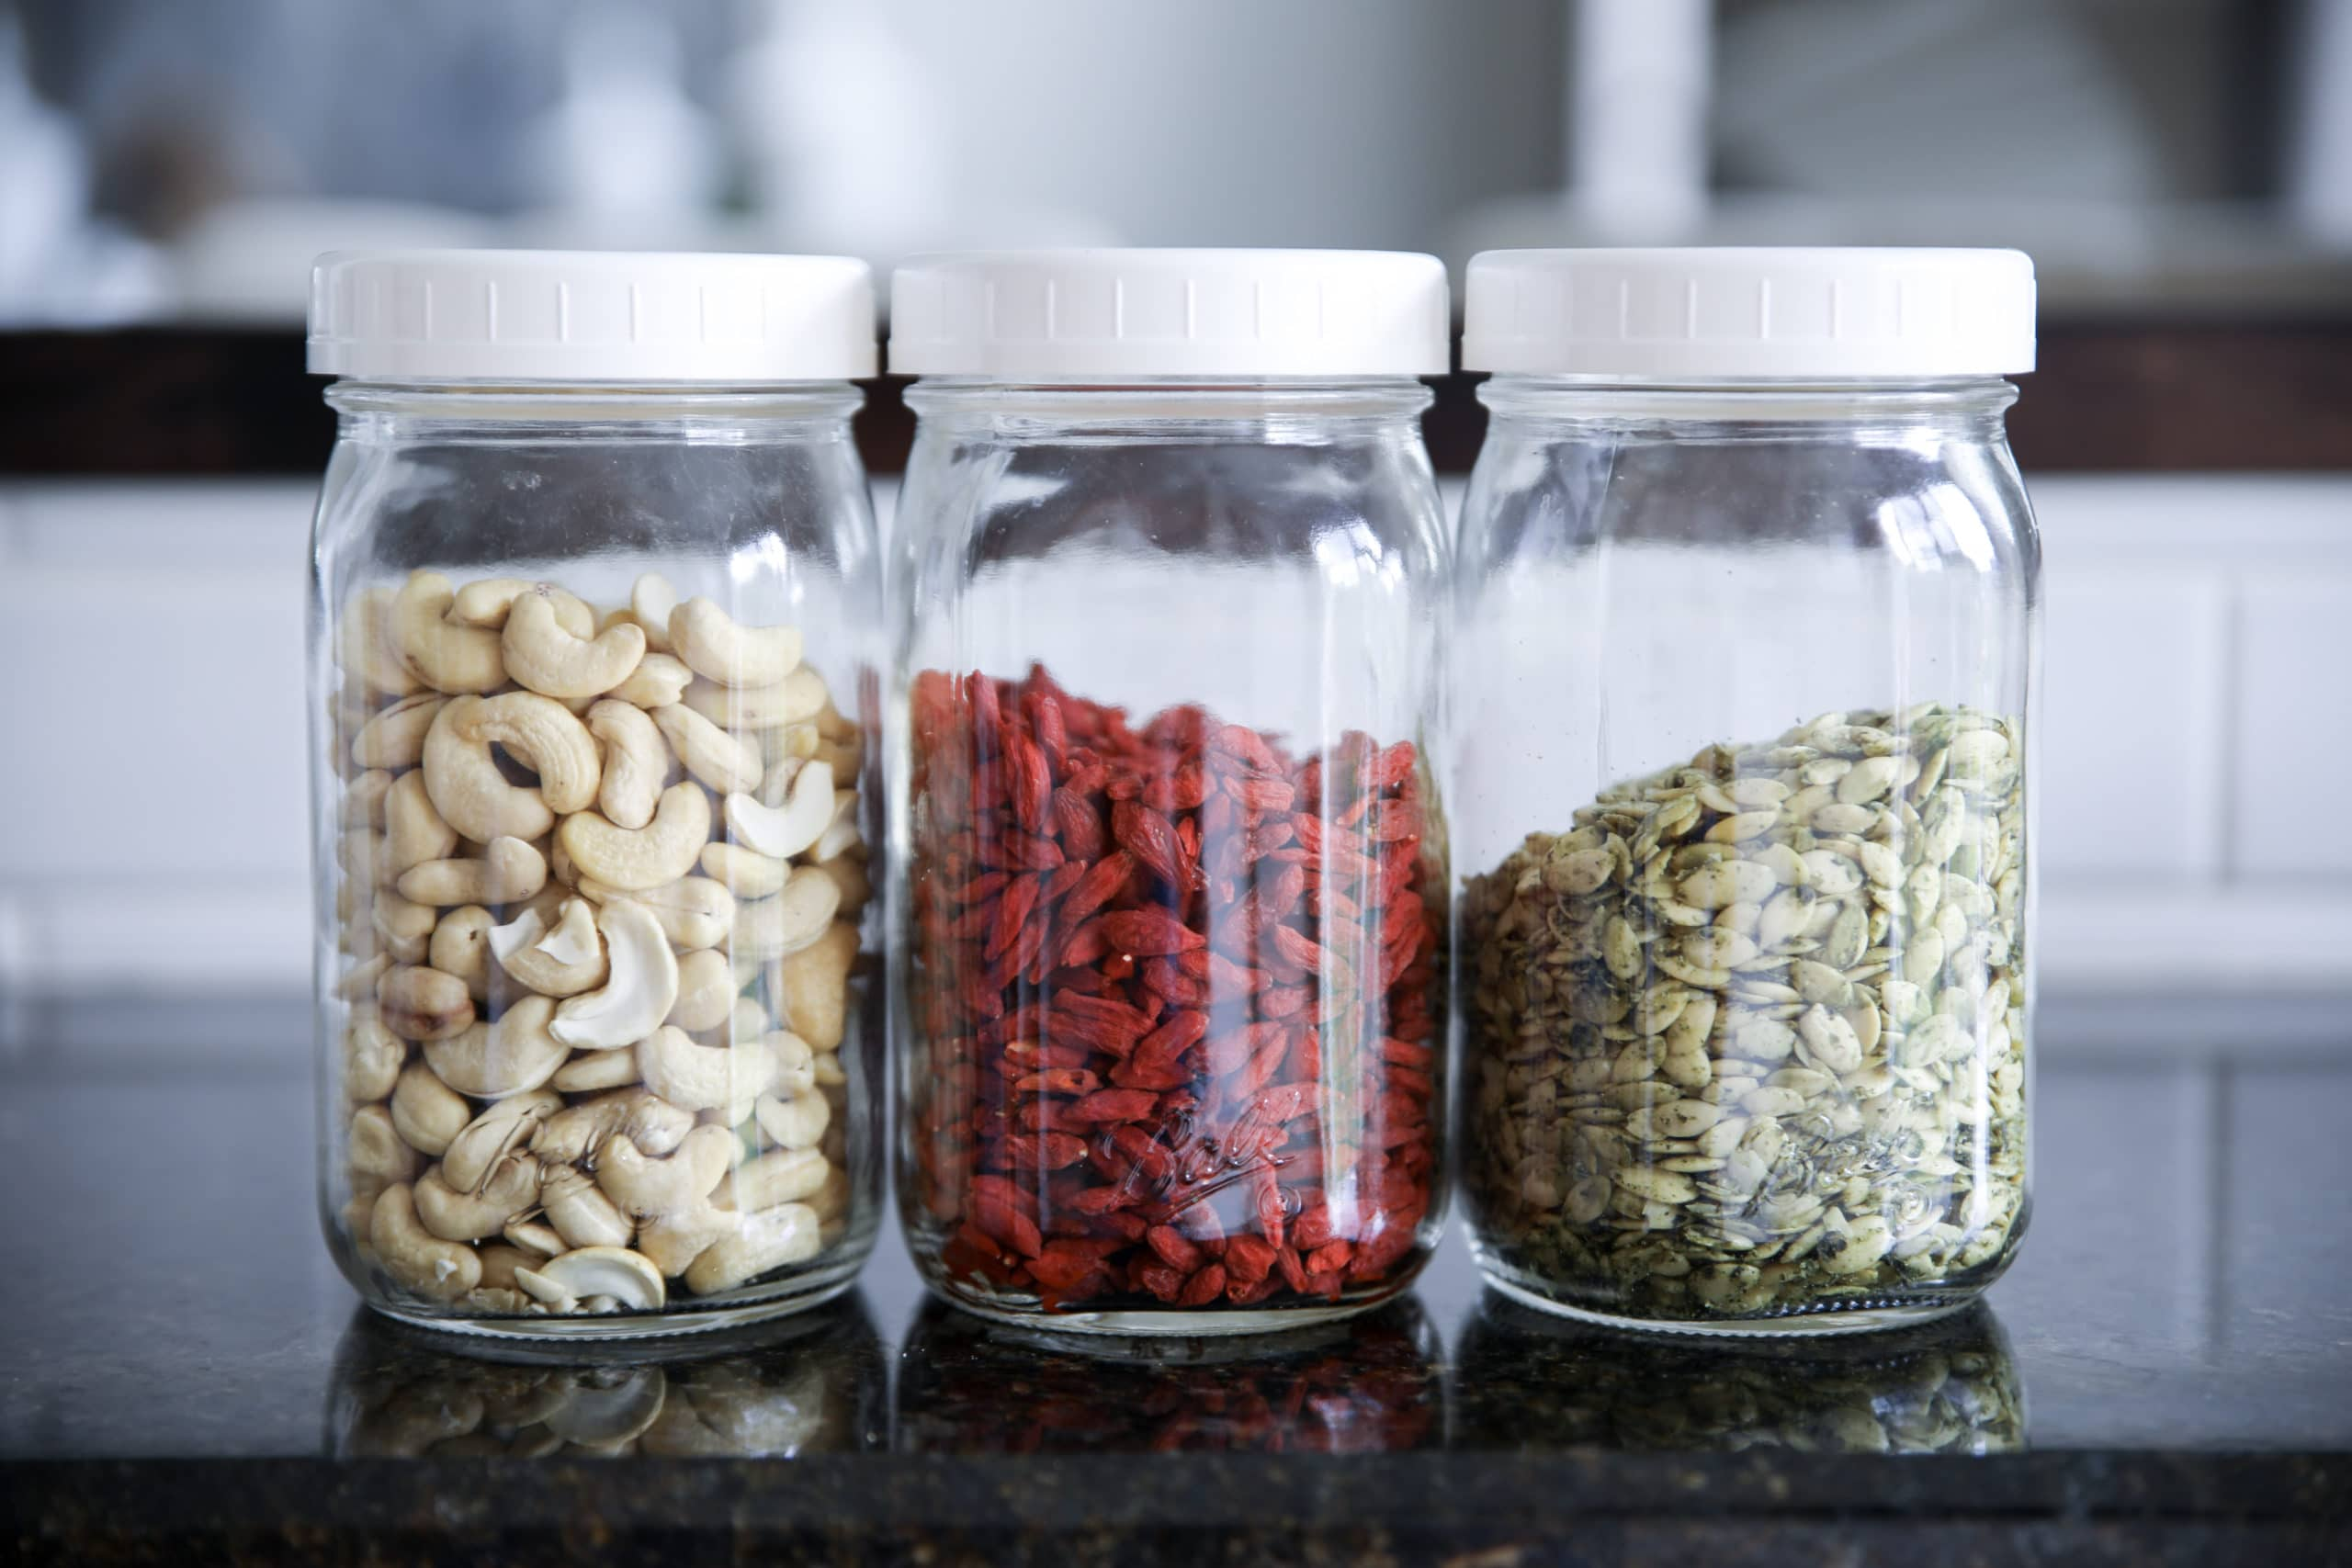 Image of nuts and seeds in jars